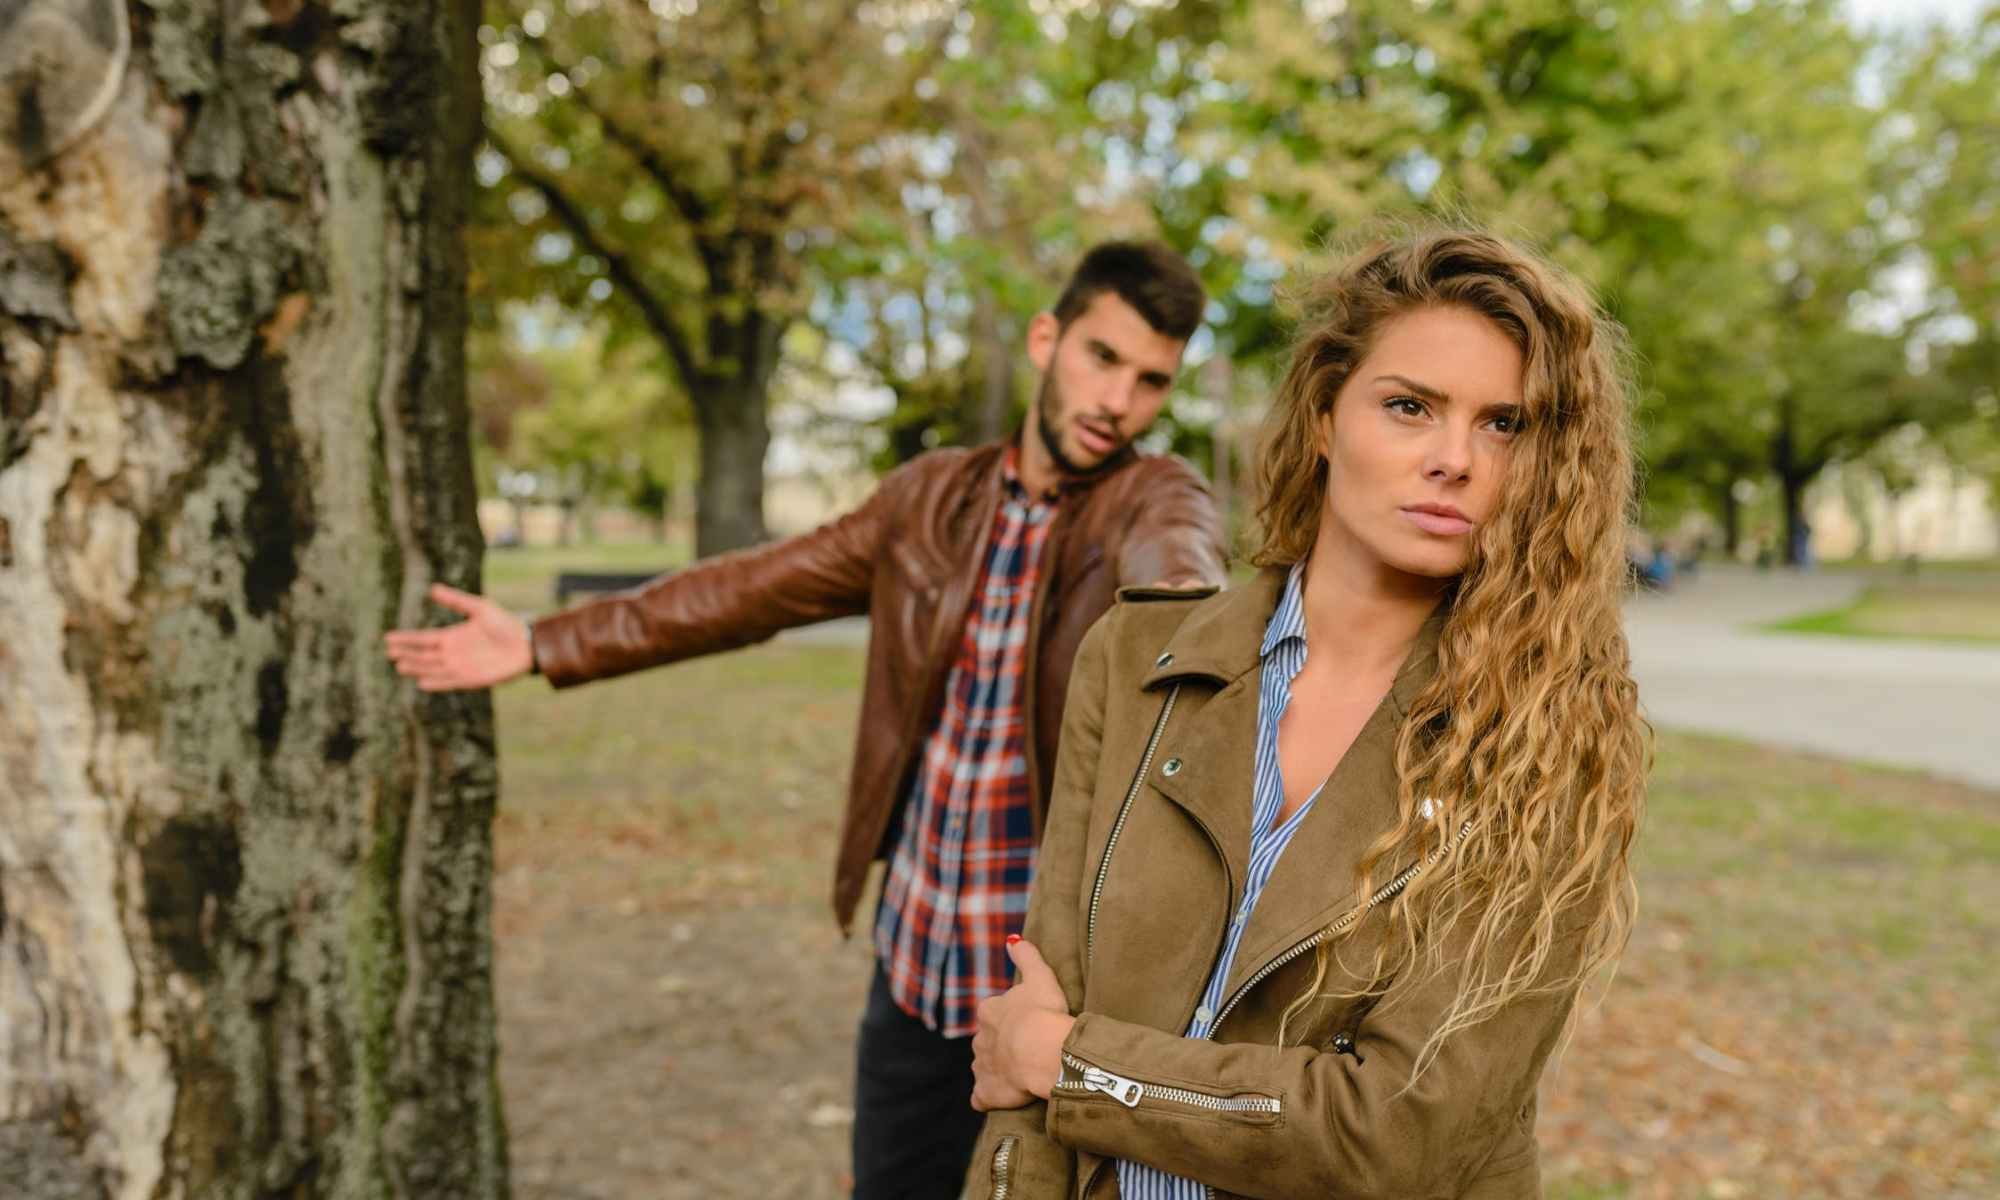 Angry blonde woman walking away from backstabbing-man in park